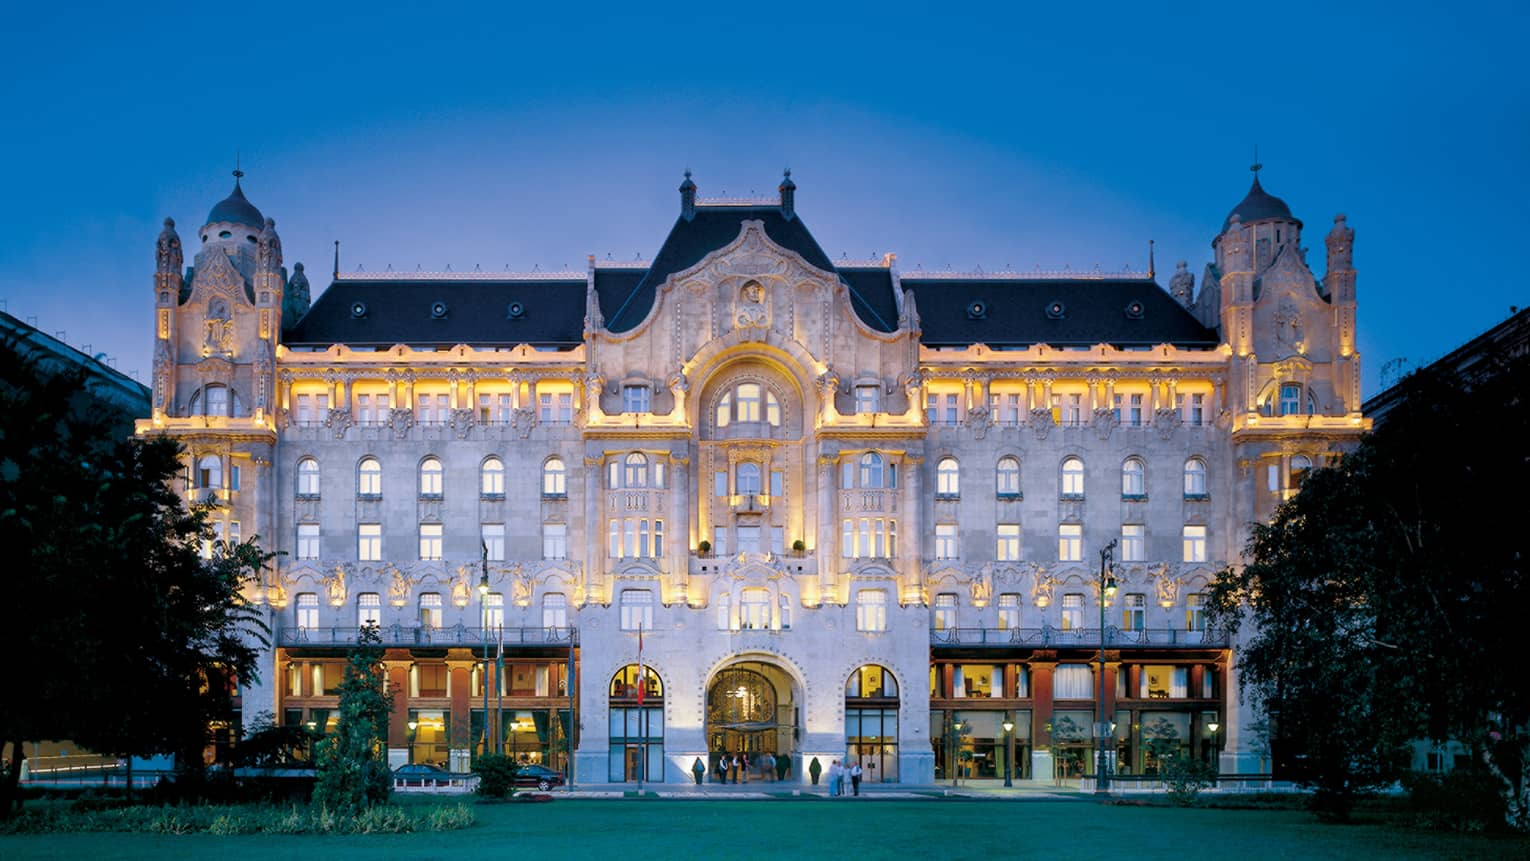 Art Nouveau style exterior of Four Seasons Hotel Gresham Palace Budapest at dusk, lights